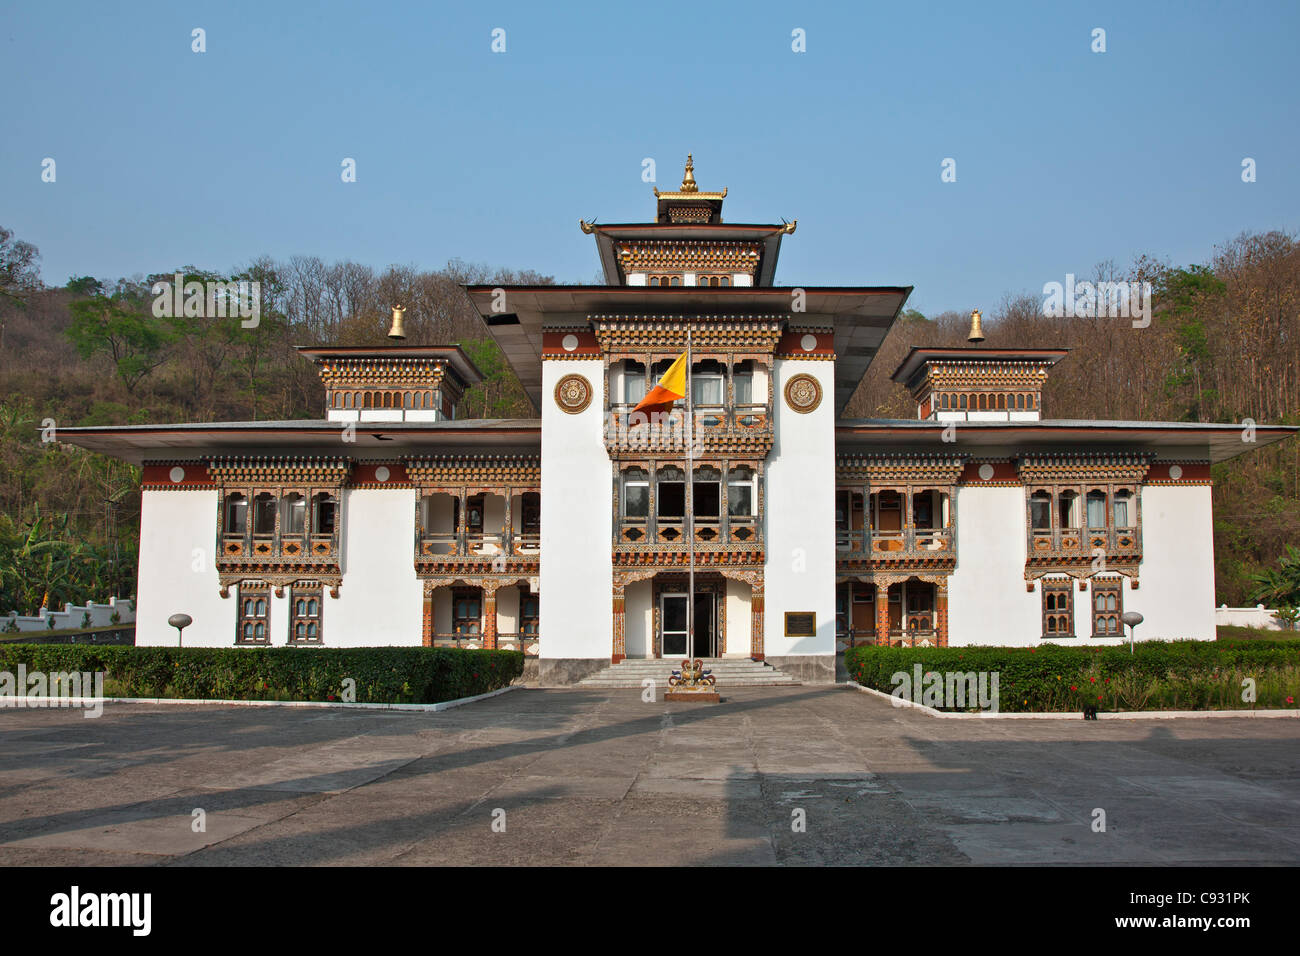 The Royal Court of Justice at Samdrup Jongkhar, a new building built in the attractive traditional Bhutanese architectural - Stock Image